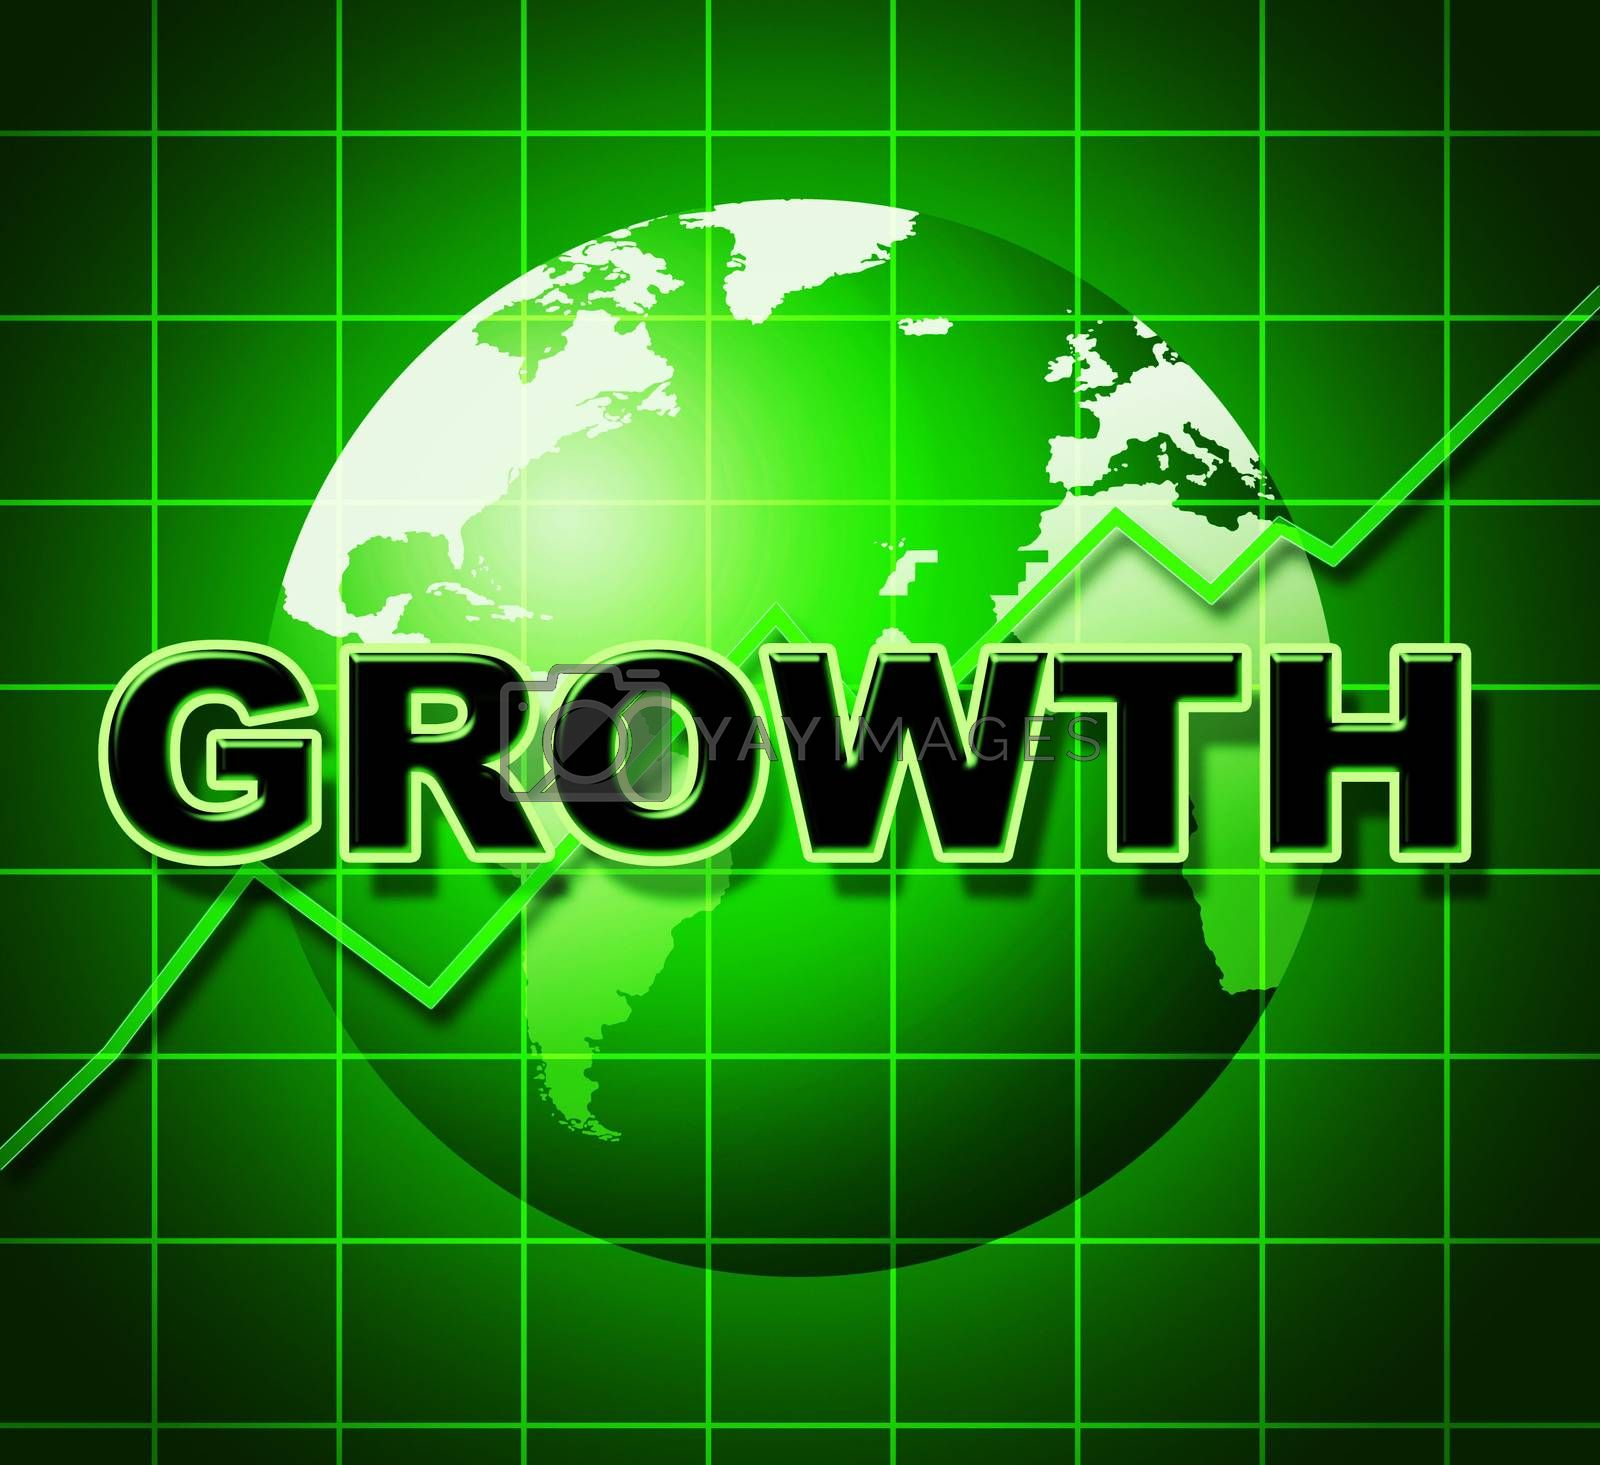 Growth Graph Means Financial Expansion And Forecast by stuartmiles